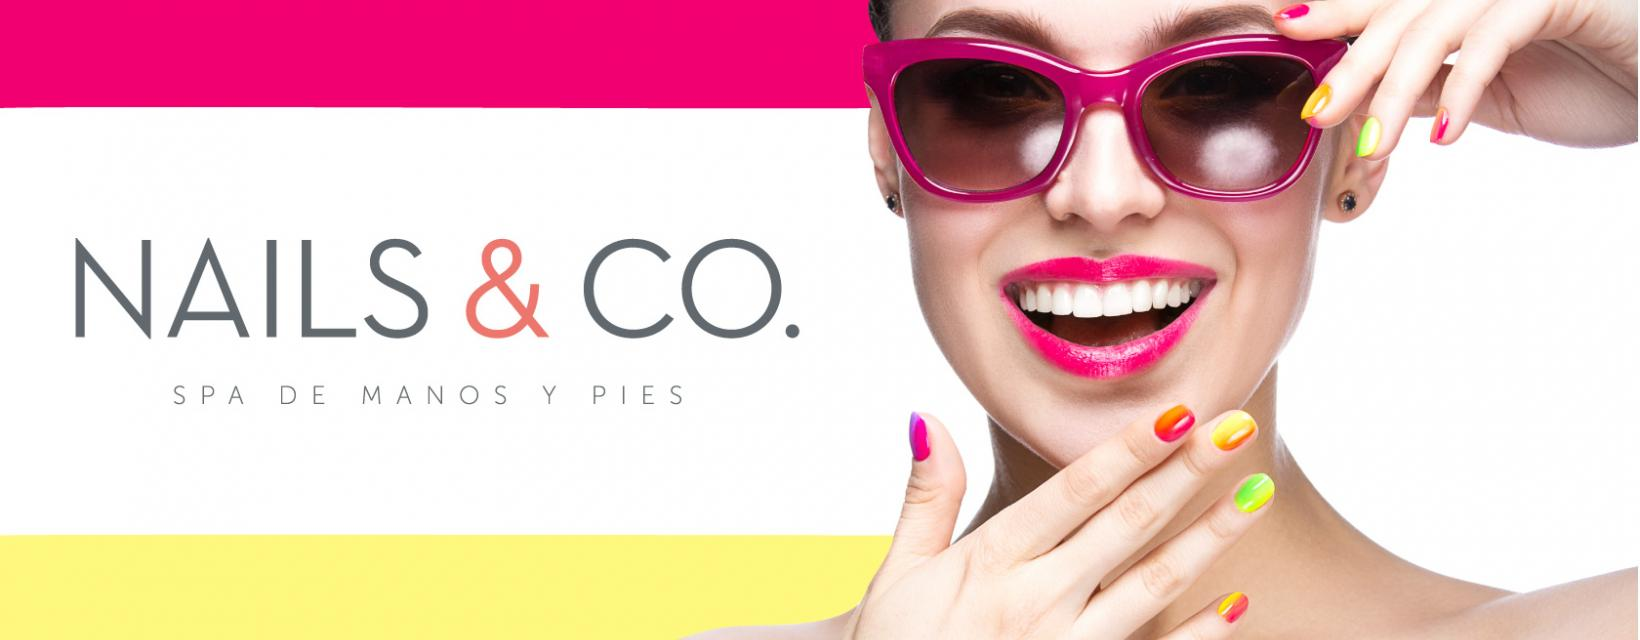 Nails & Co BANNER